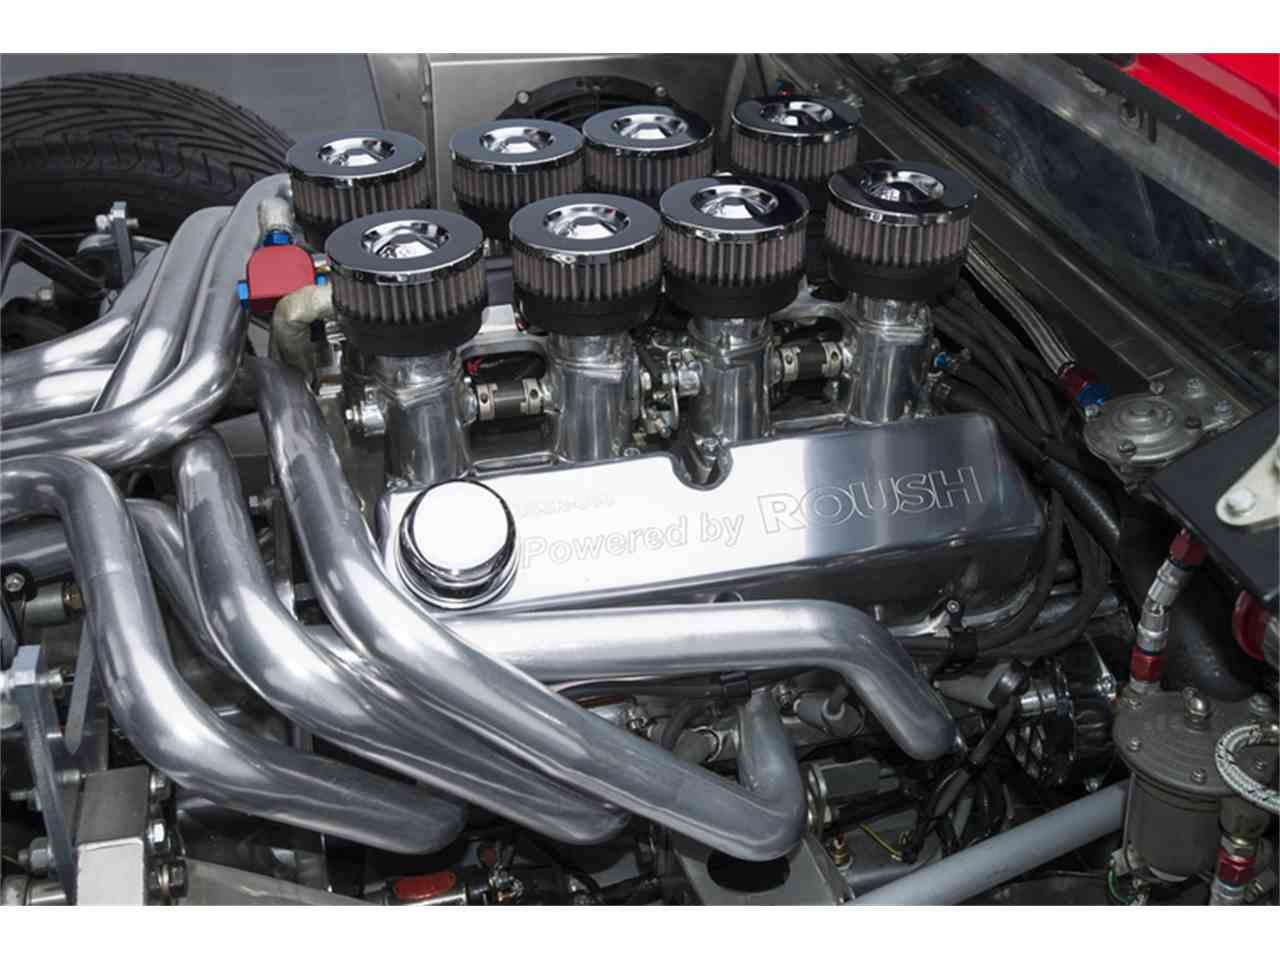 photo 40 - 1966 Ford Gt40 Engine